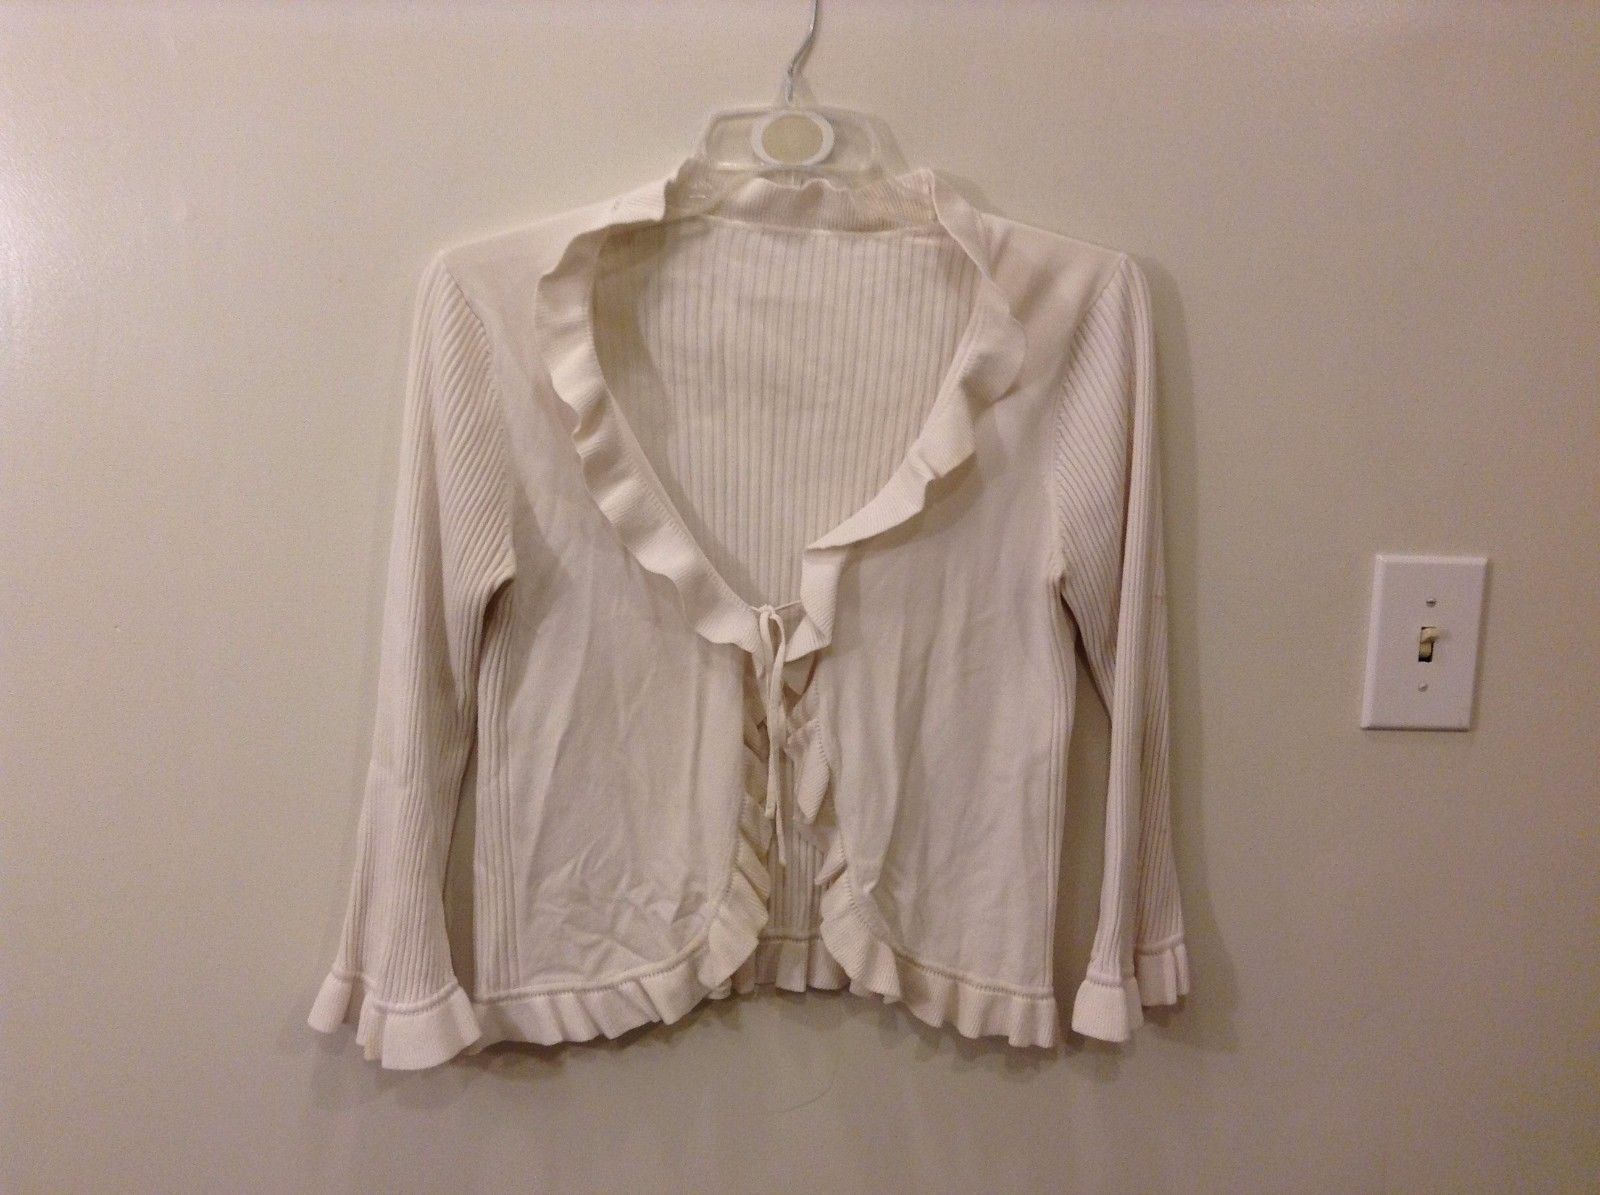 Cream Cardigan Blouse Sweater Self Tie String Adjustable Frilly Borders